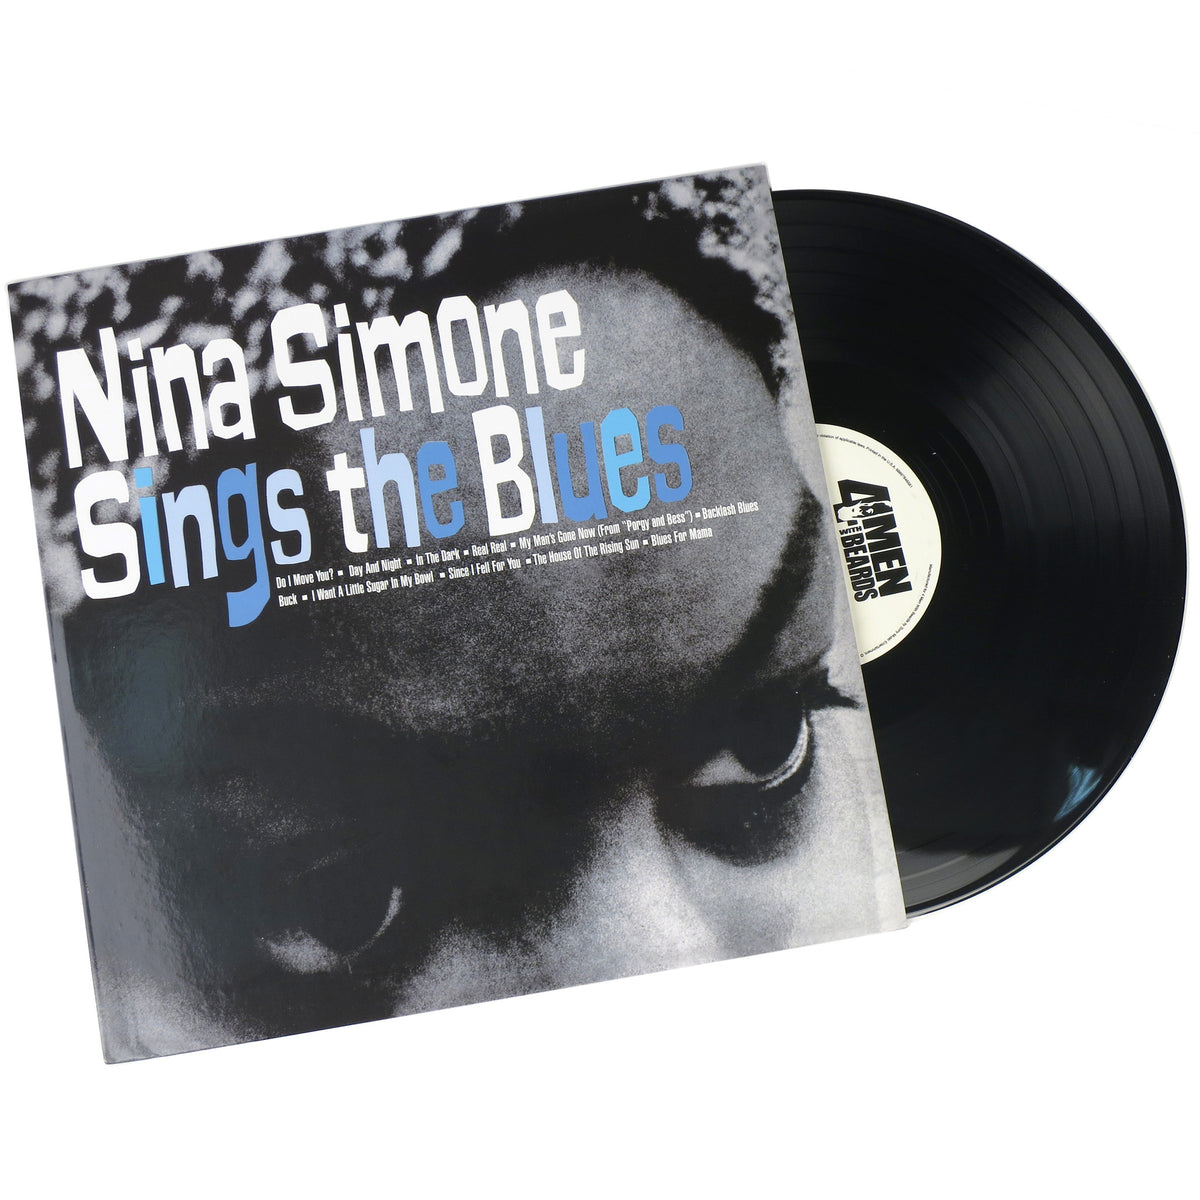 Nina Simone Sings The Blues Vinyl